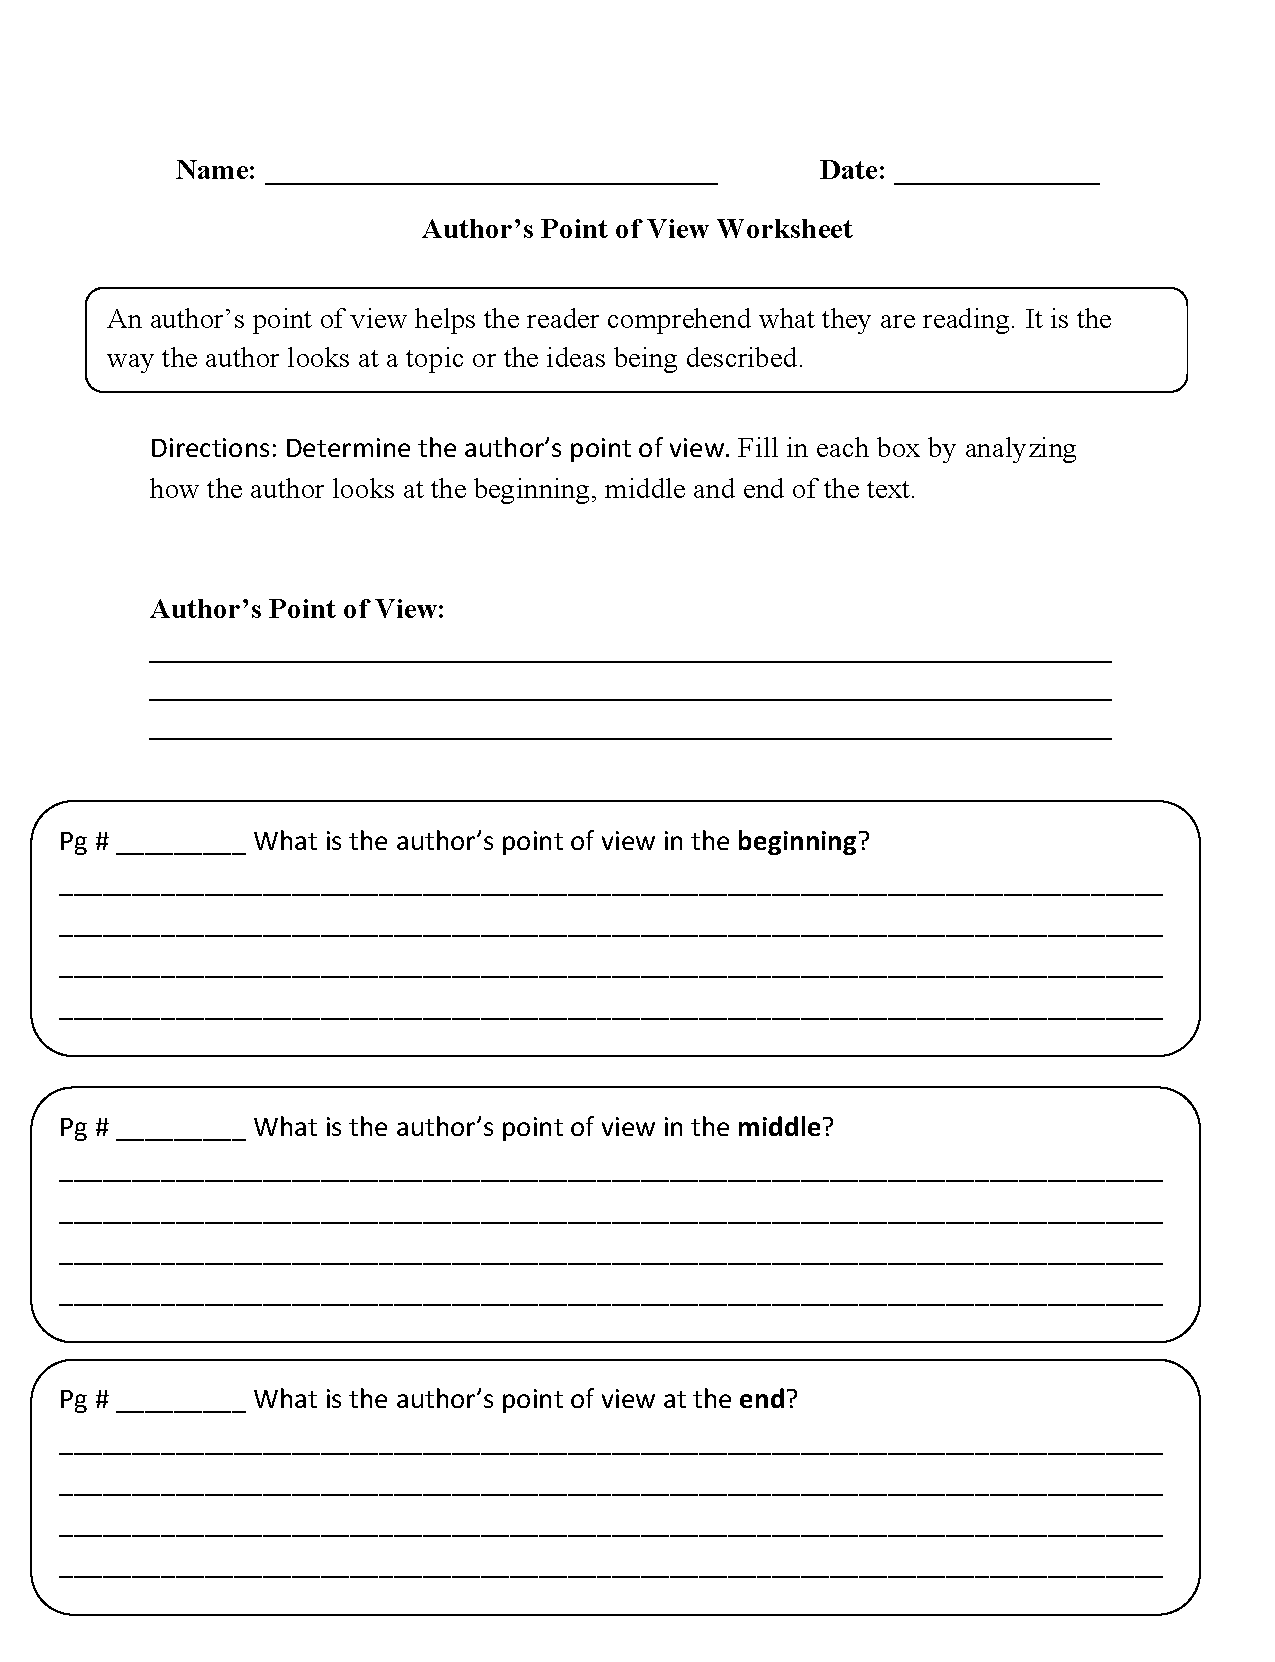 Weirdmailus  Marvelous Englishlinxcom  Point Of View Worksheets With Exciting Point Of View Worksheets With Enchanting Fact Family Multiplication And Division Worksheets Also Singapore Math Worksheet In Addition Multiplication Worksheets Th Grade Printable And Fractions For Kindergarten Worksheets As Well As Opinion Worksheet Additionally Latin America Worksheets From Englishlinxcom With Weirdmailus  Exciting Englishlinxcom  Point Of View Worksheets With Enchanting Point Of View Worksheets And Marvelous Fact Family Multiplication And Division Worksheets Also Singapore Math Worksheet In Addition Multiplication Worksheets Th Grade Printable From Englishlinxcom